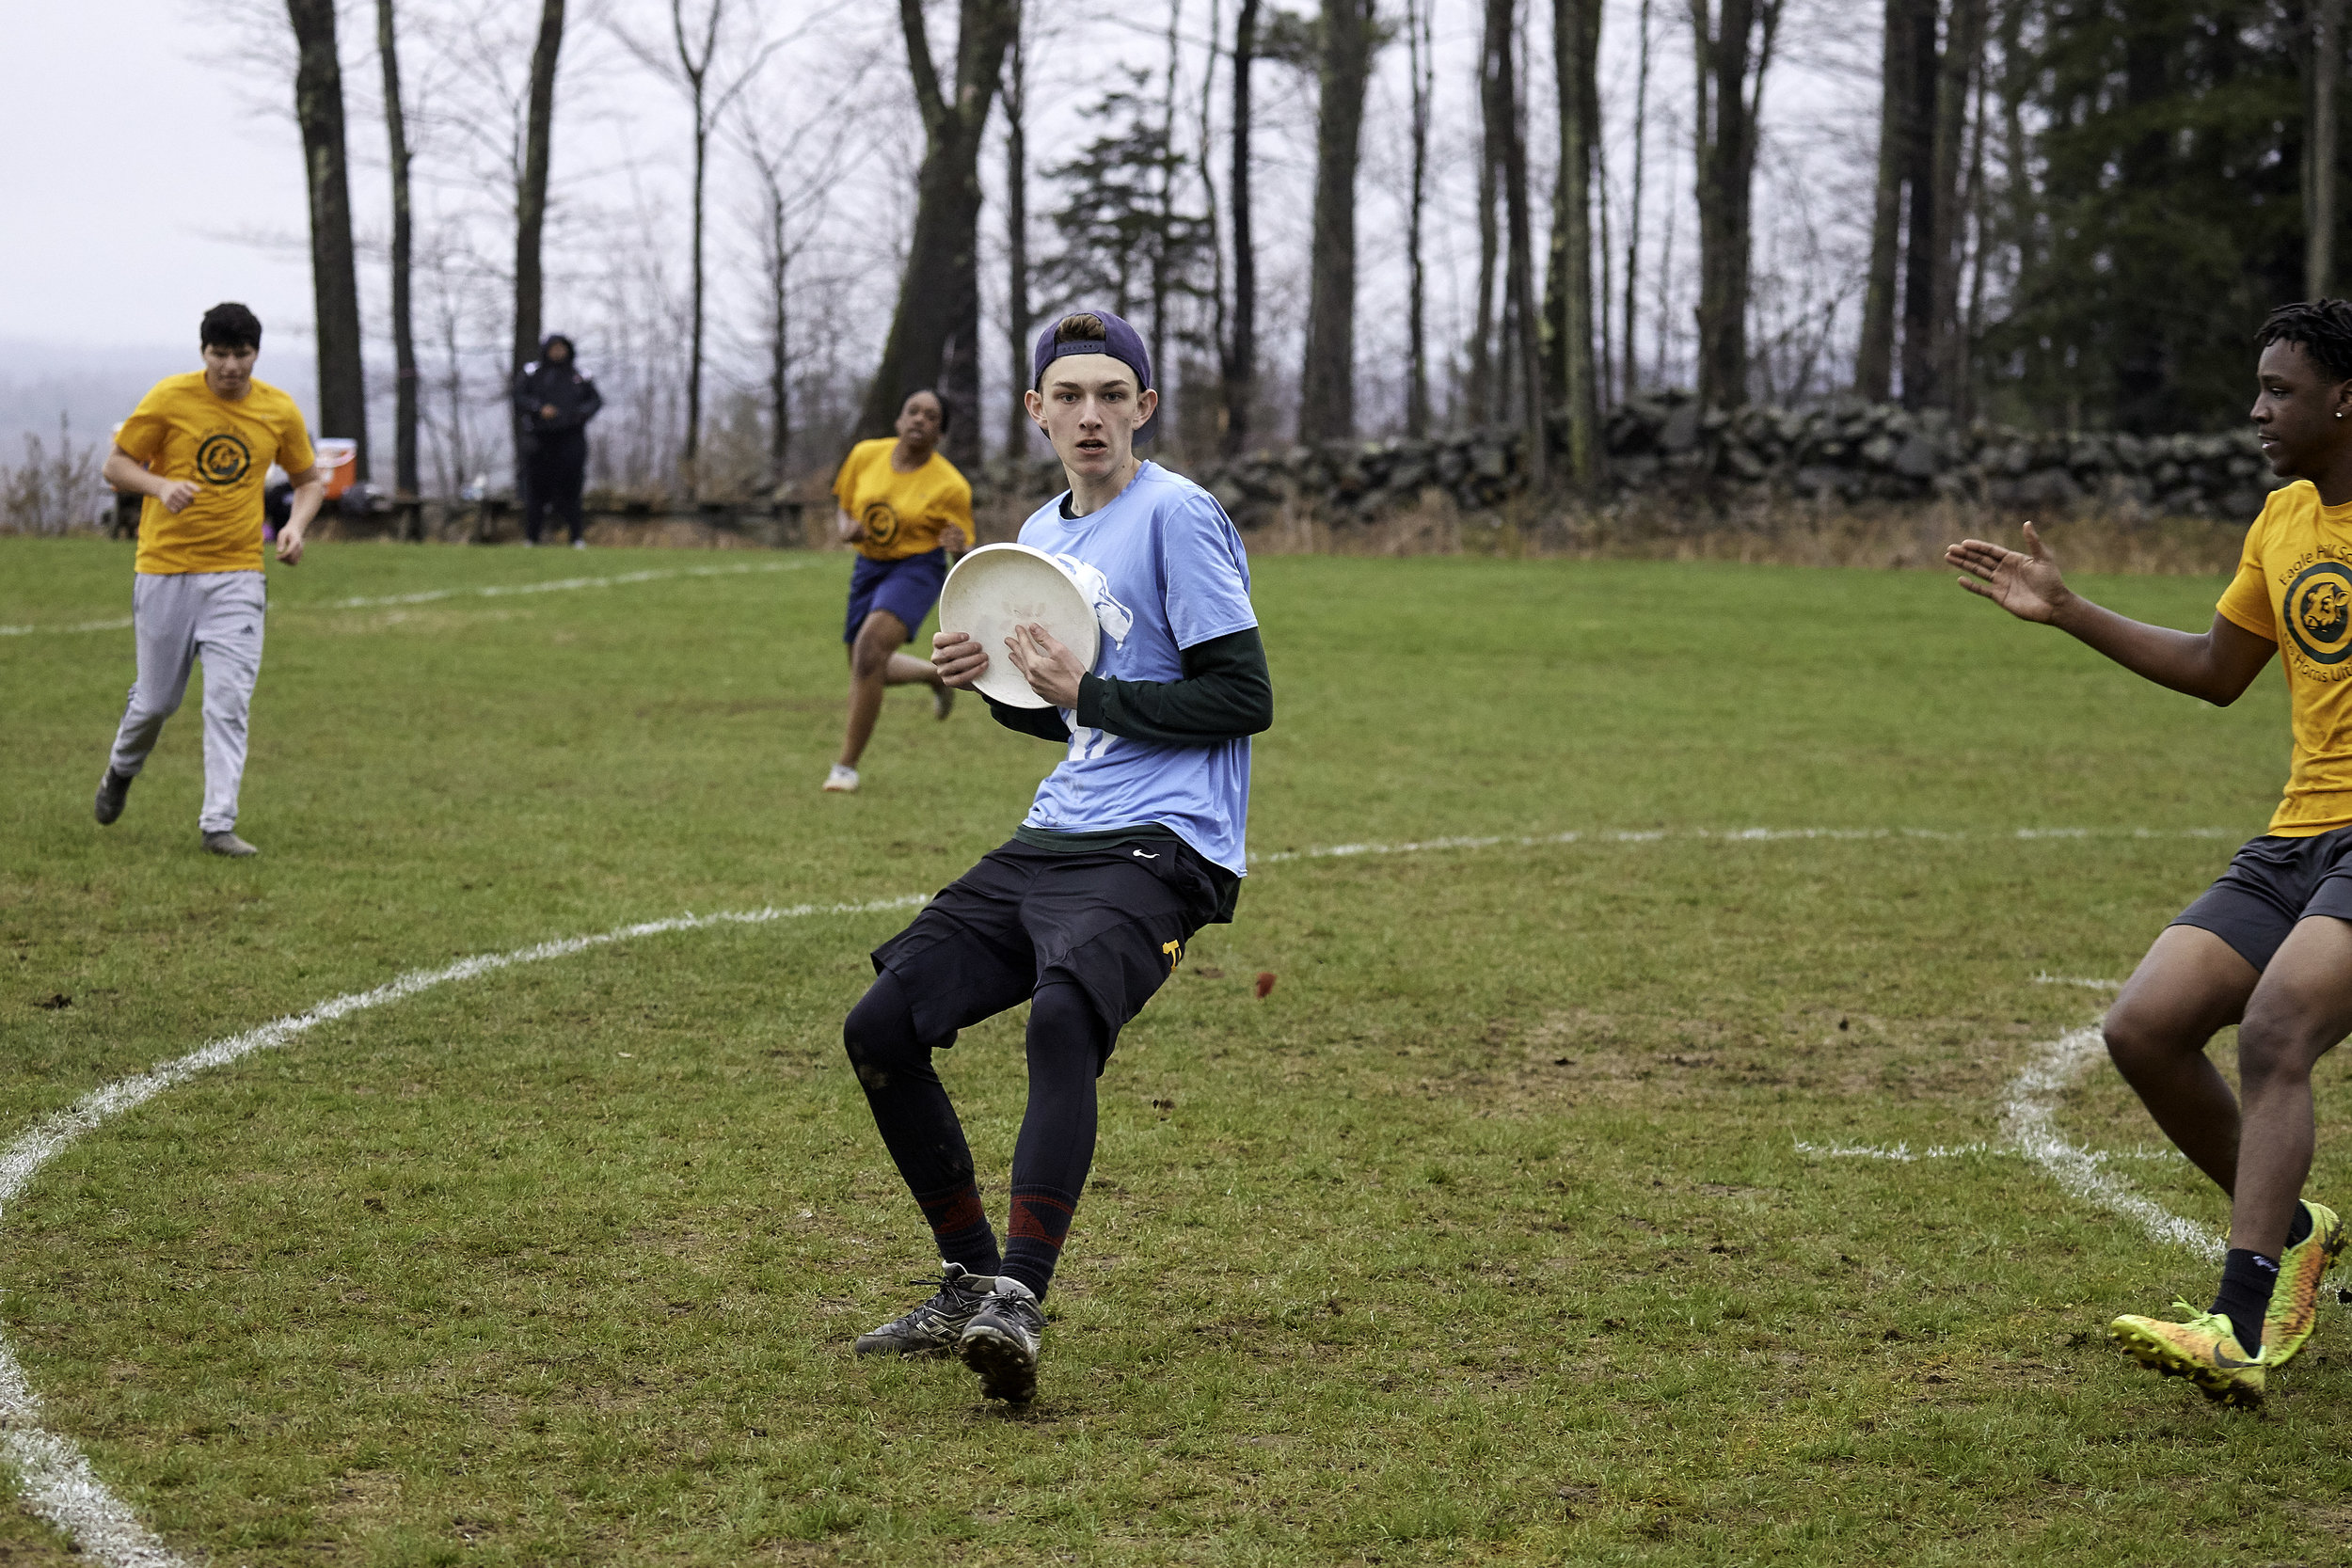 Ultimate Frisbee vs. Eagle Hill School - May 3, 2019 - 188879.jpg